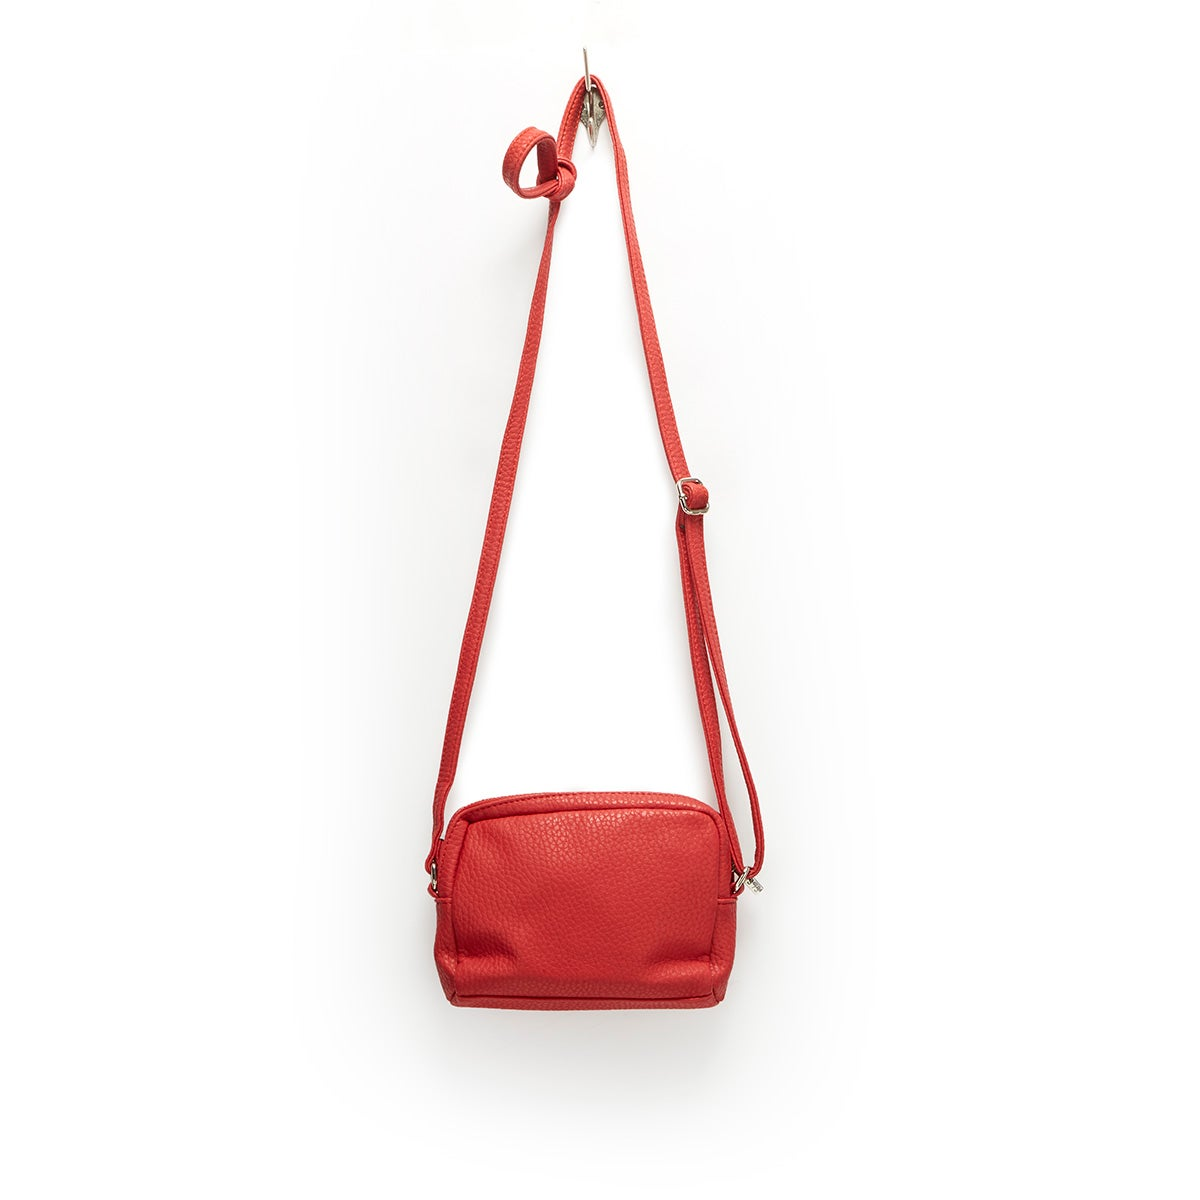 Lds Roots73 red cross body bag